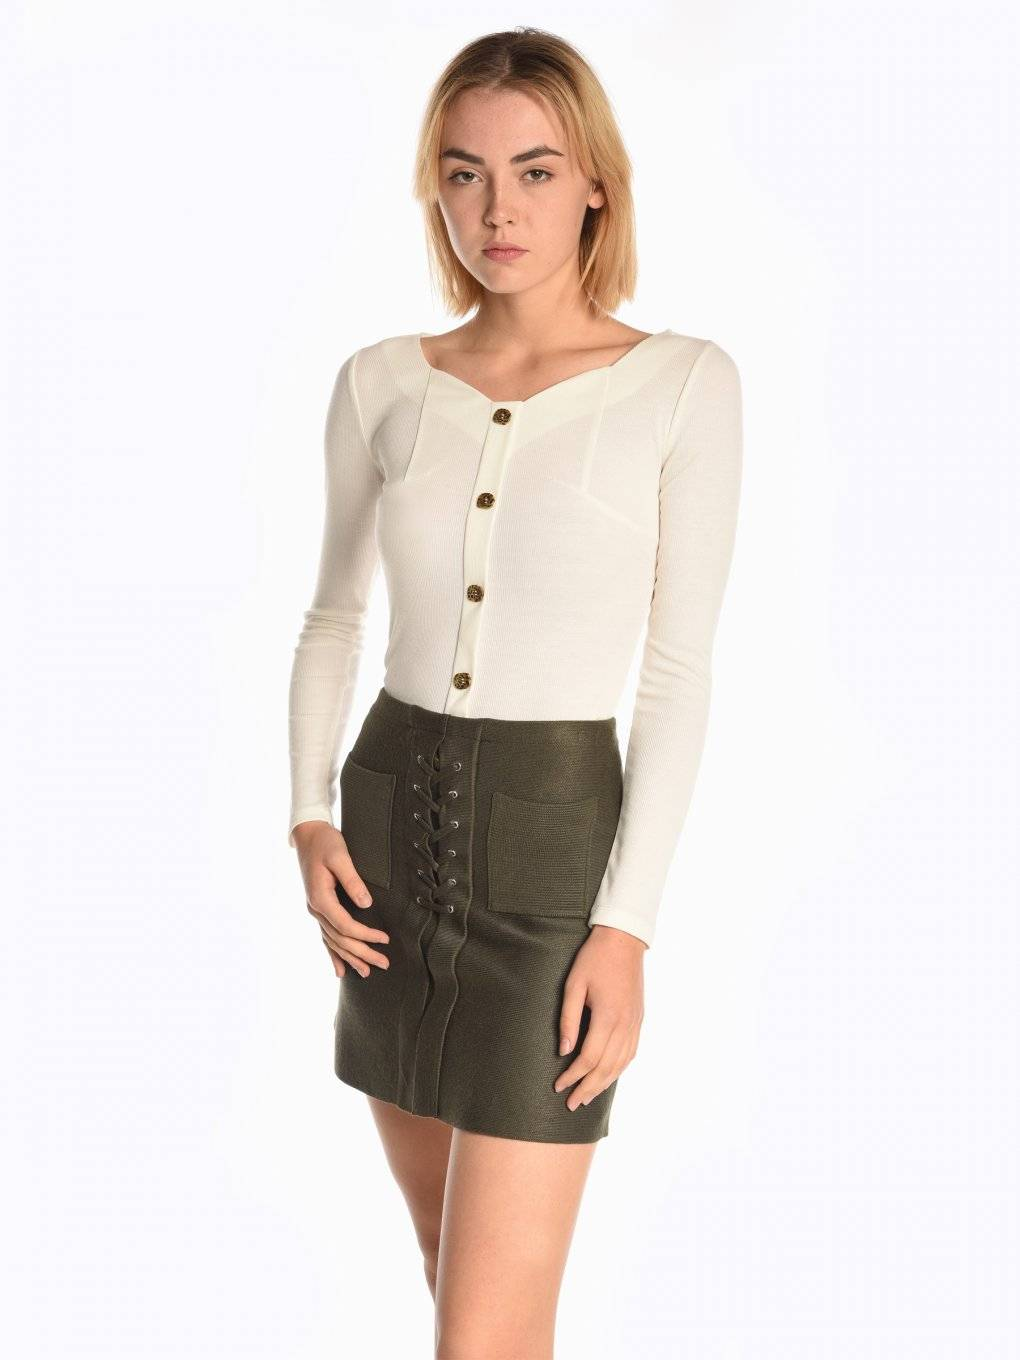 Ribbed top with buttons